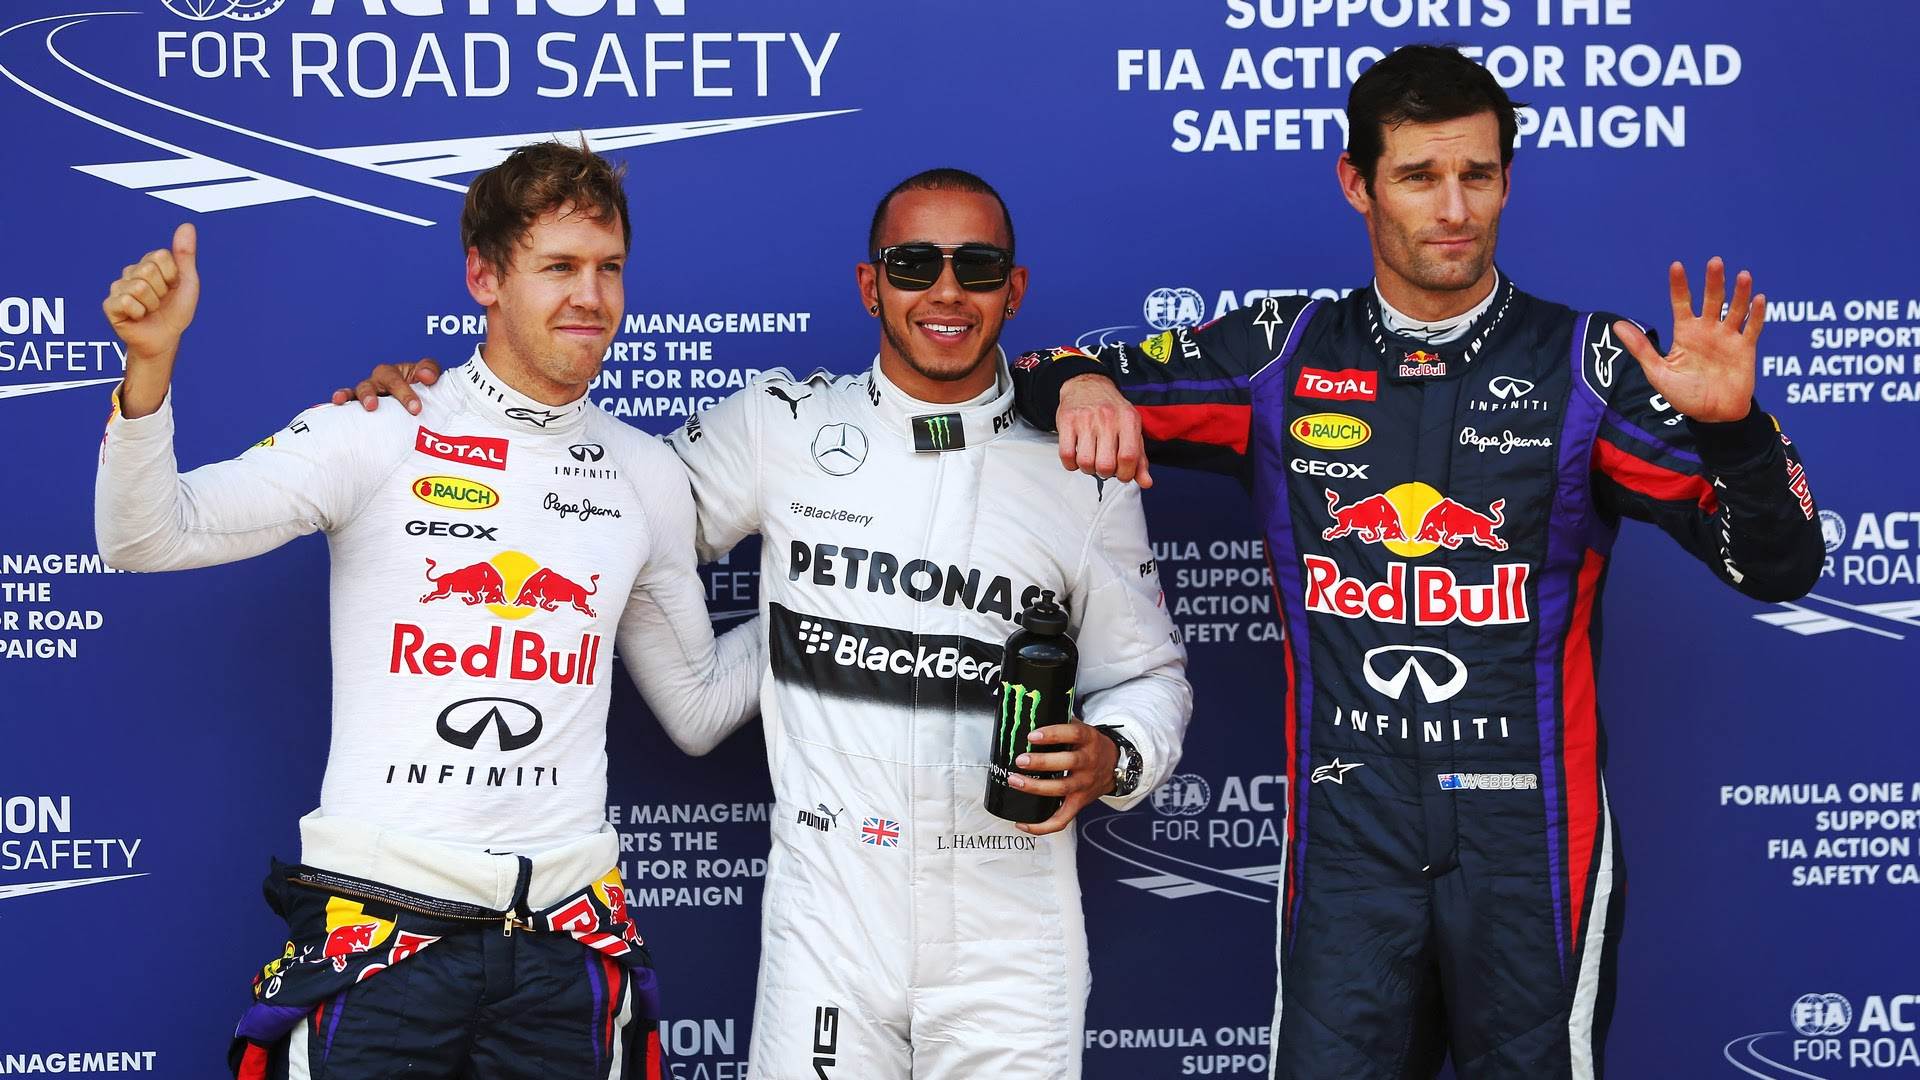 f1 results - photo #32